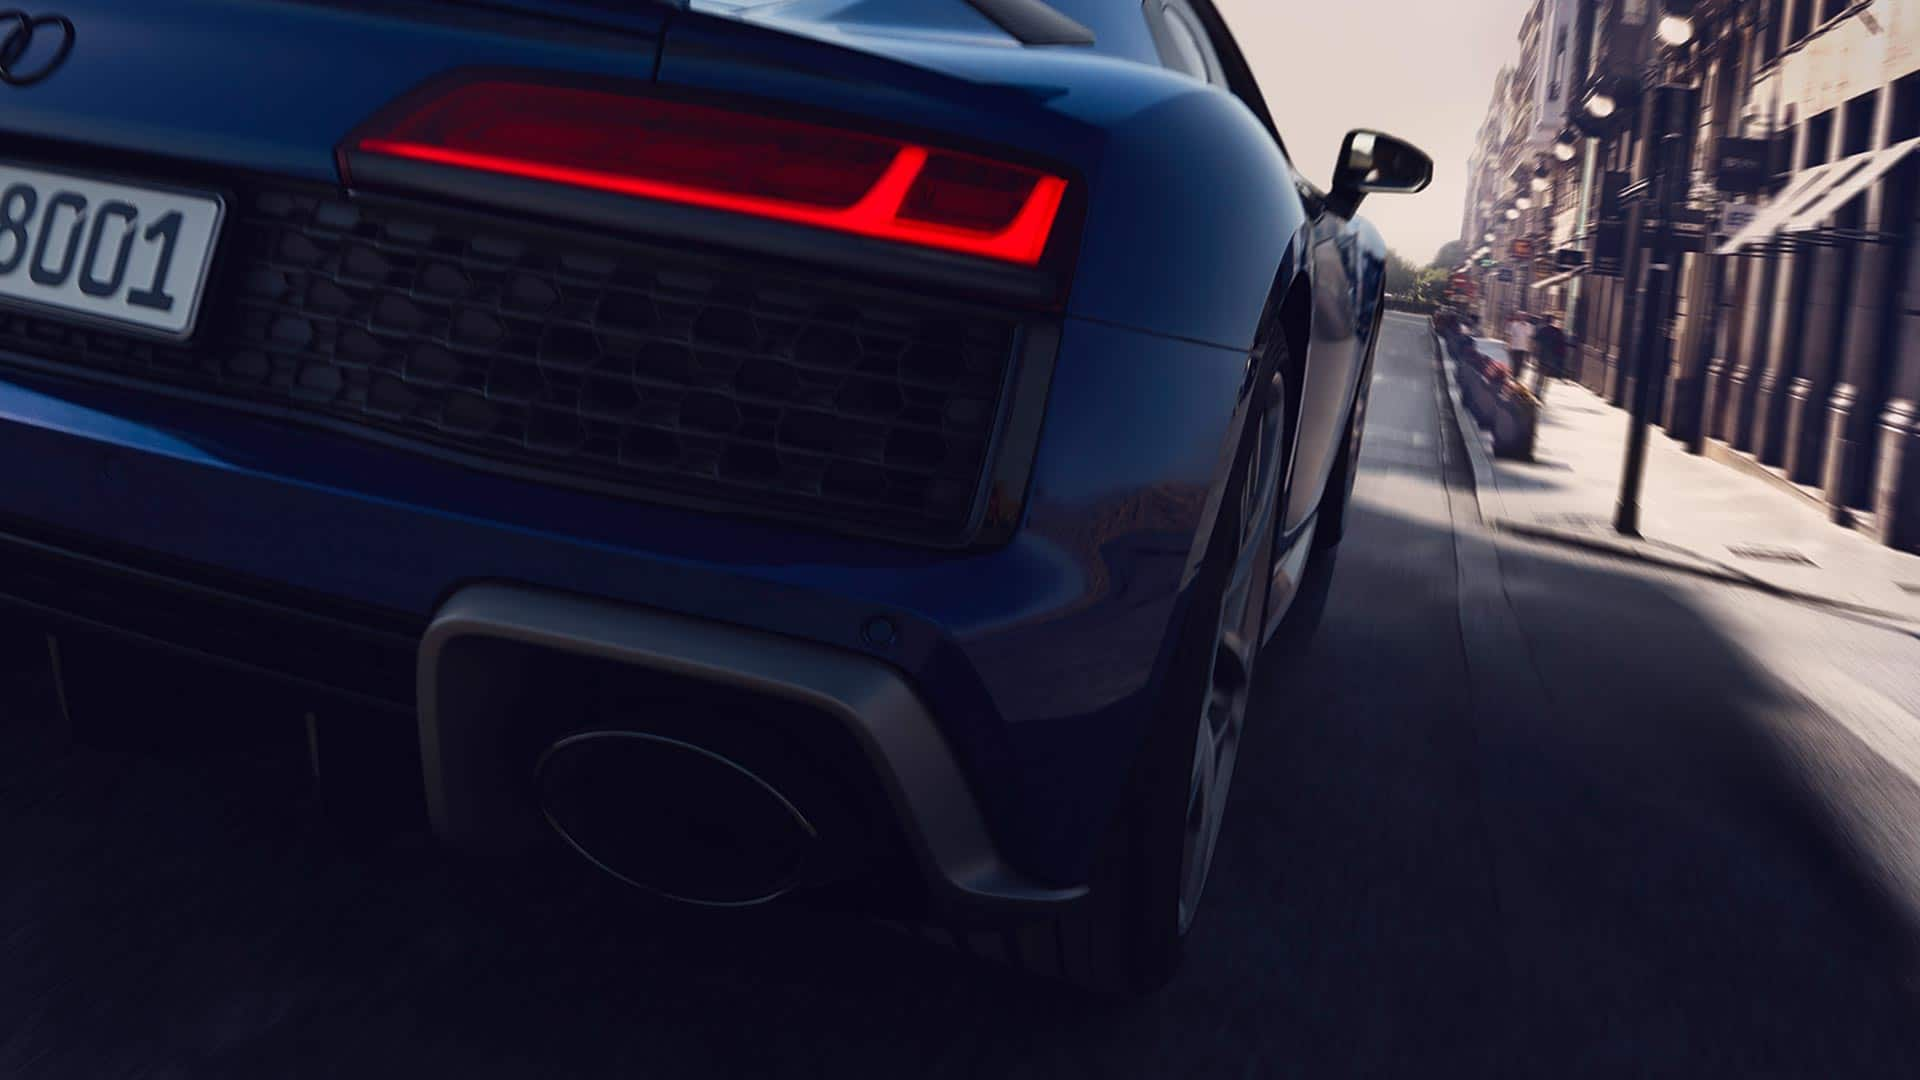 Audi R8 Coupé V10 performance quattro rearview